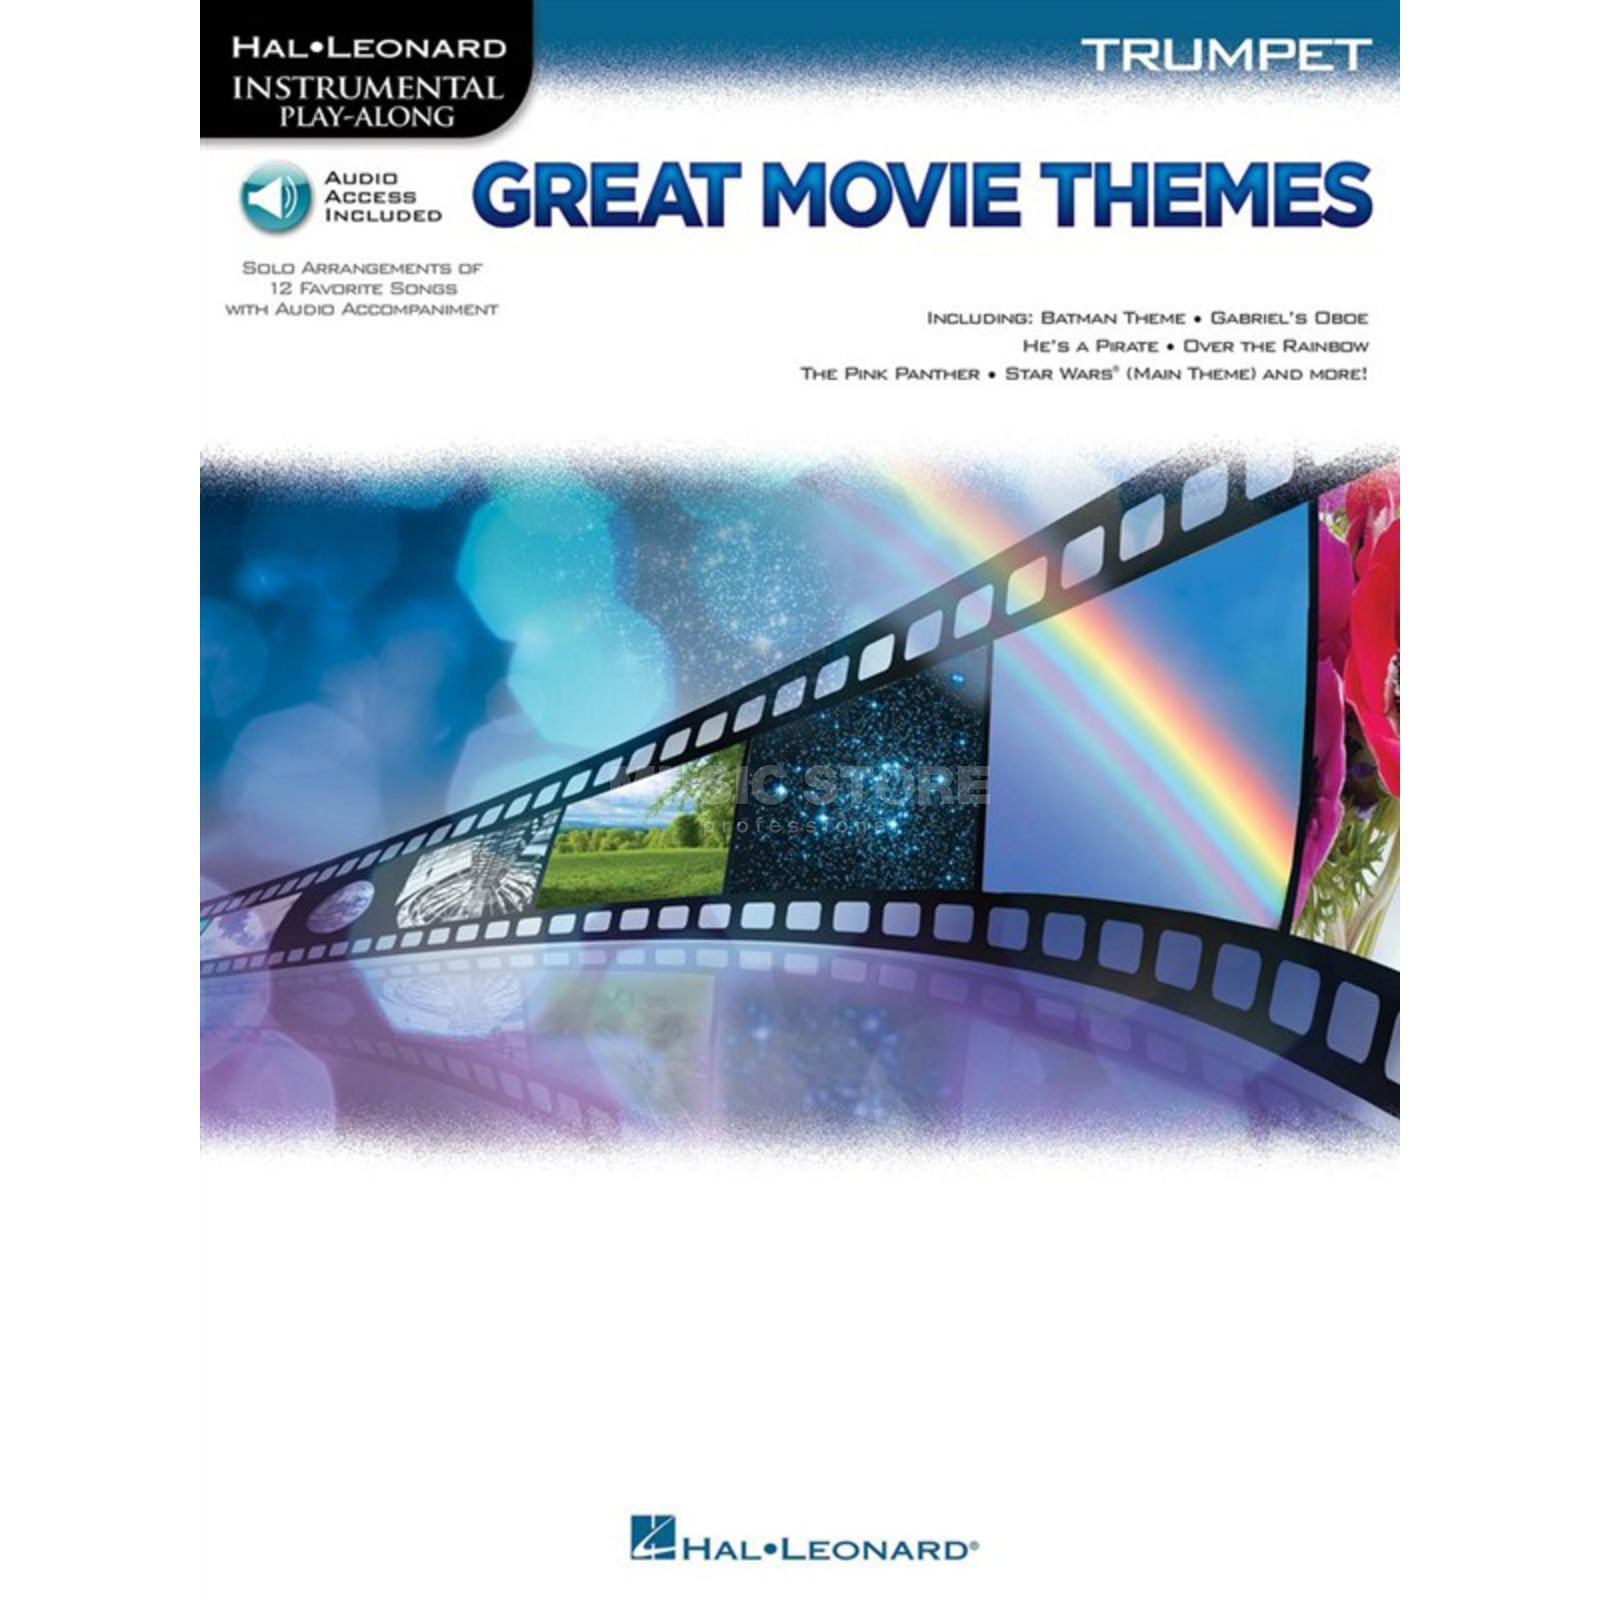 Hal Leonard Instrumental Play-Along: Great Movie Themes - Trumpet Produktbillede